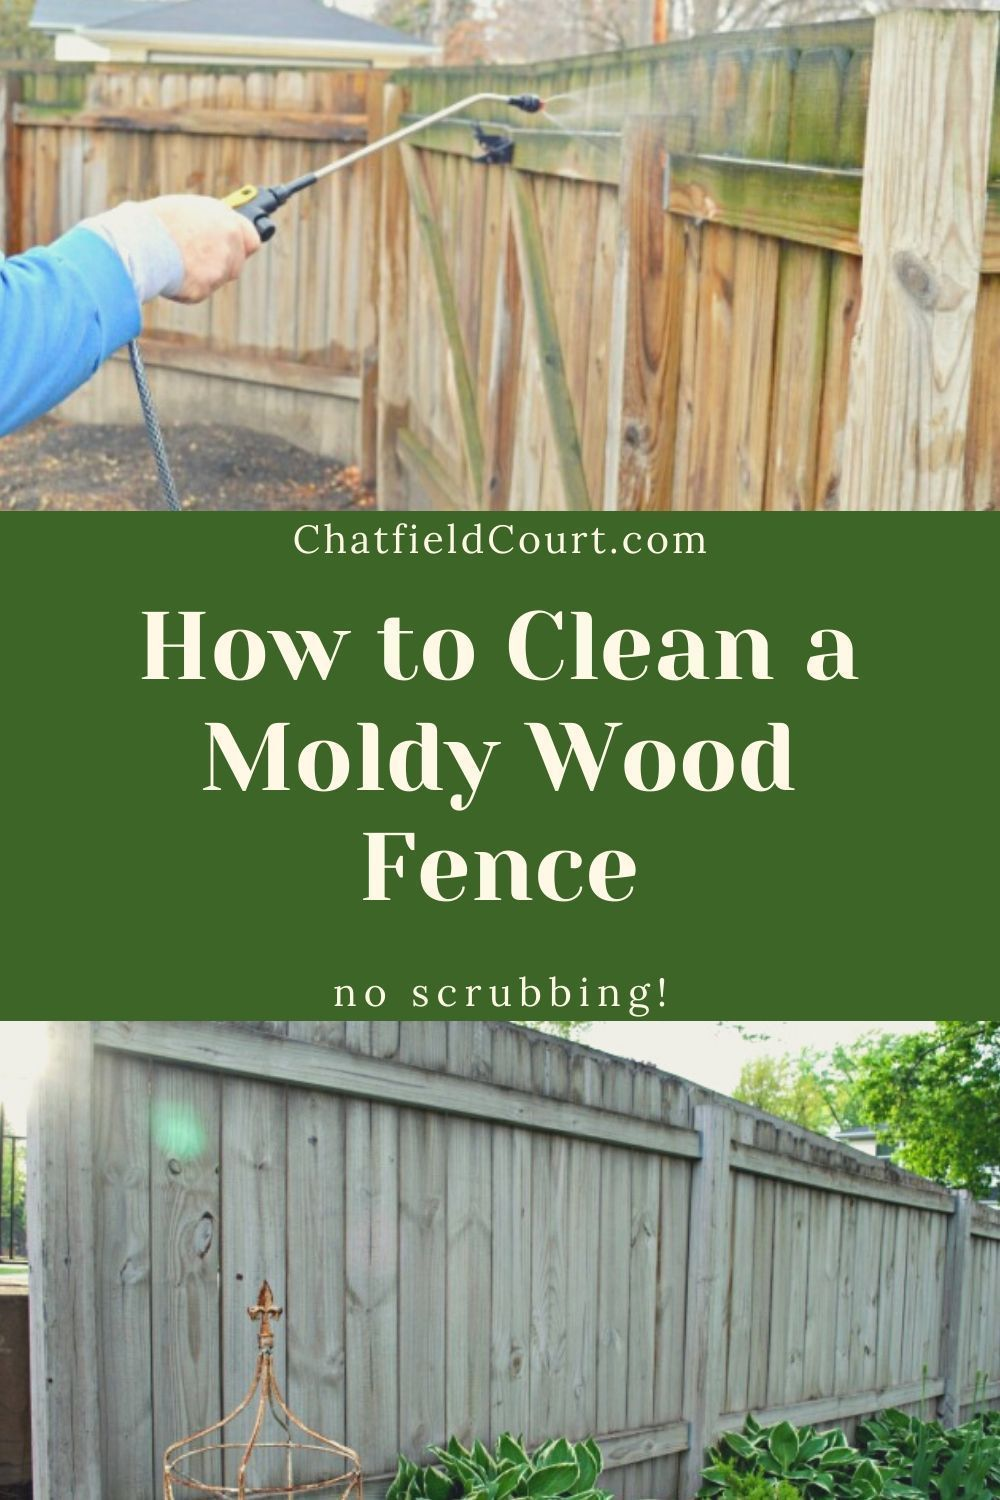 How to easily clean a mold wood fence quickly and without scrubbing.